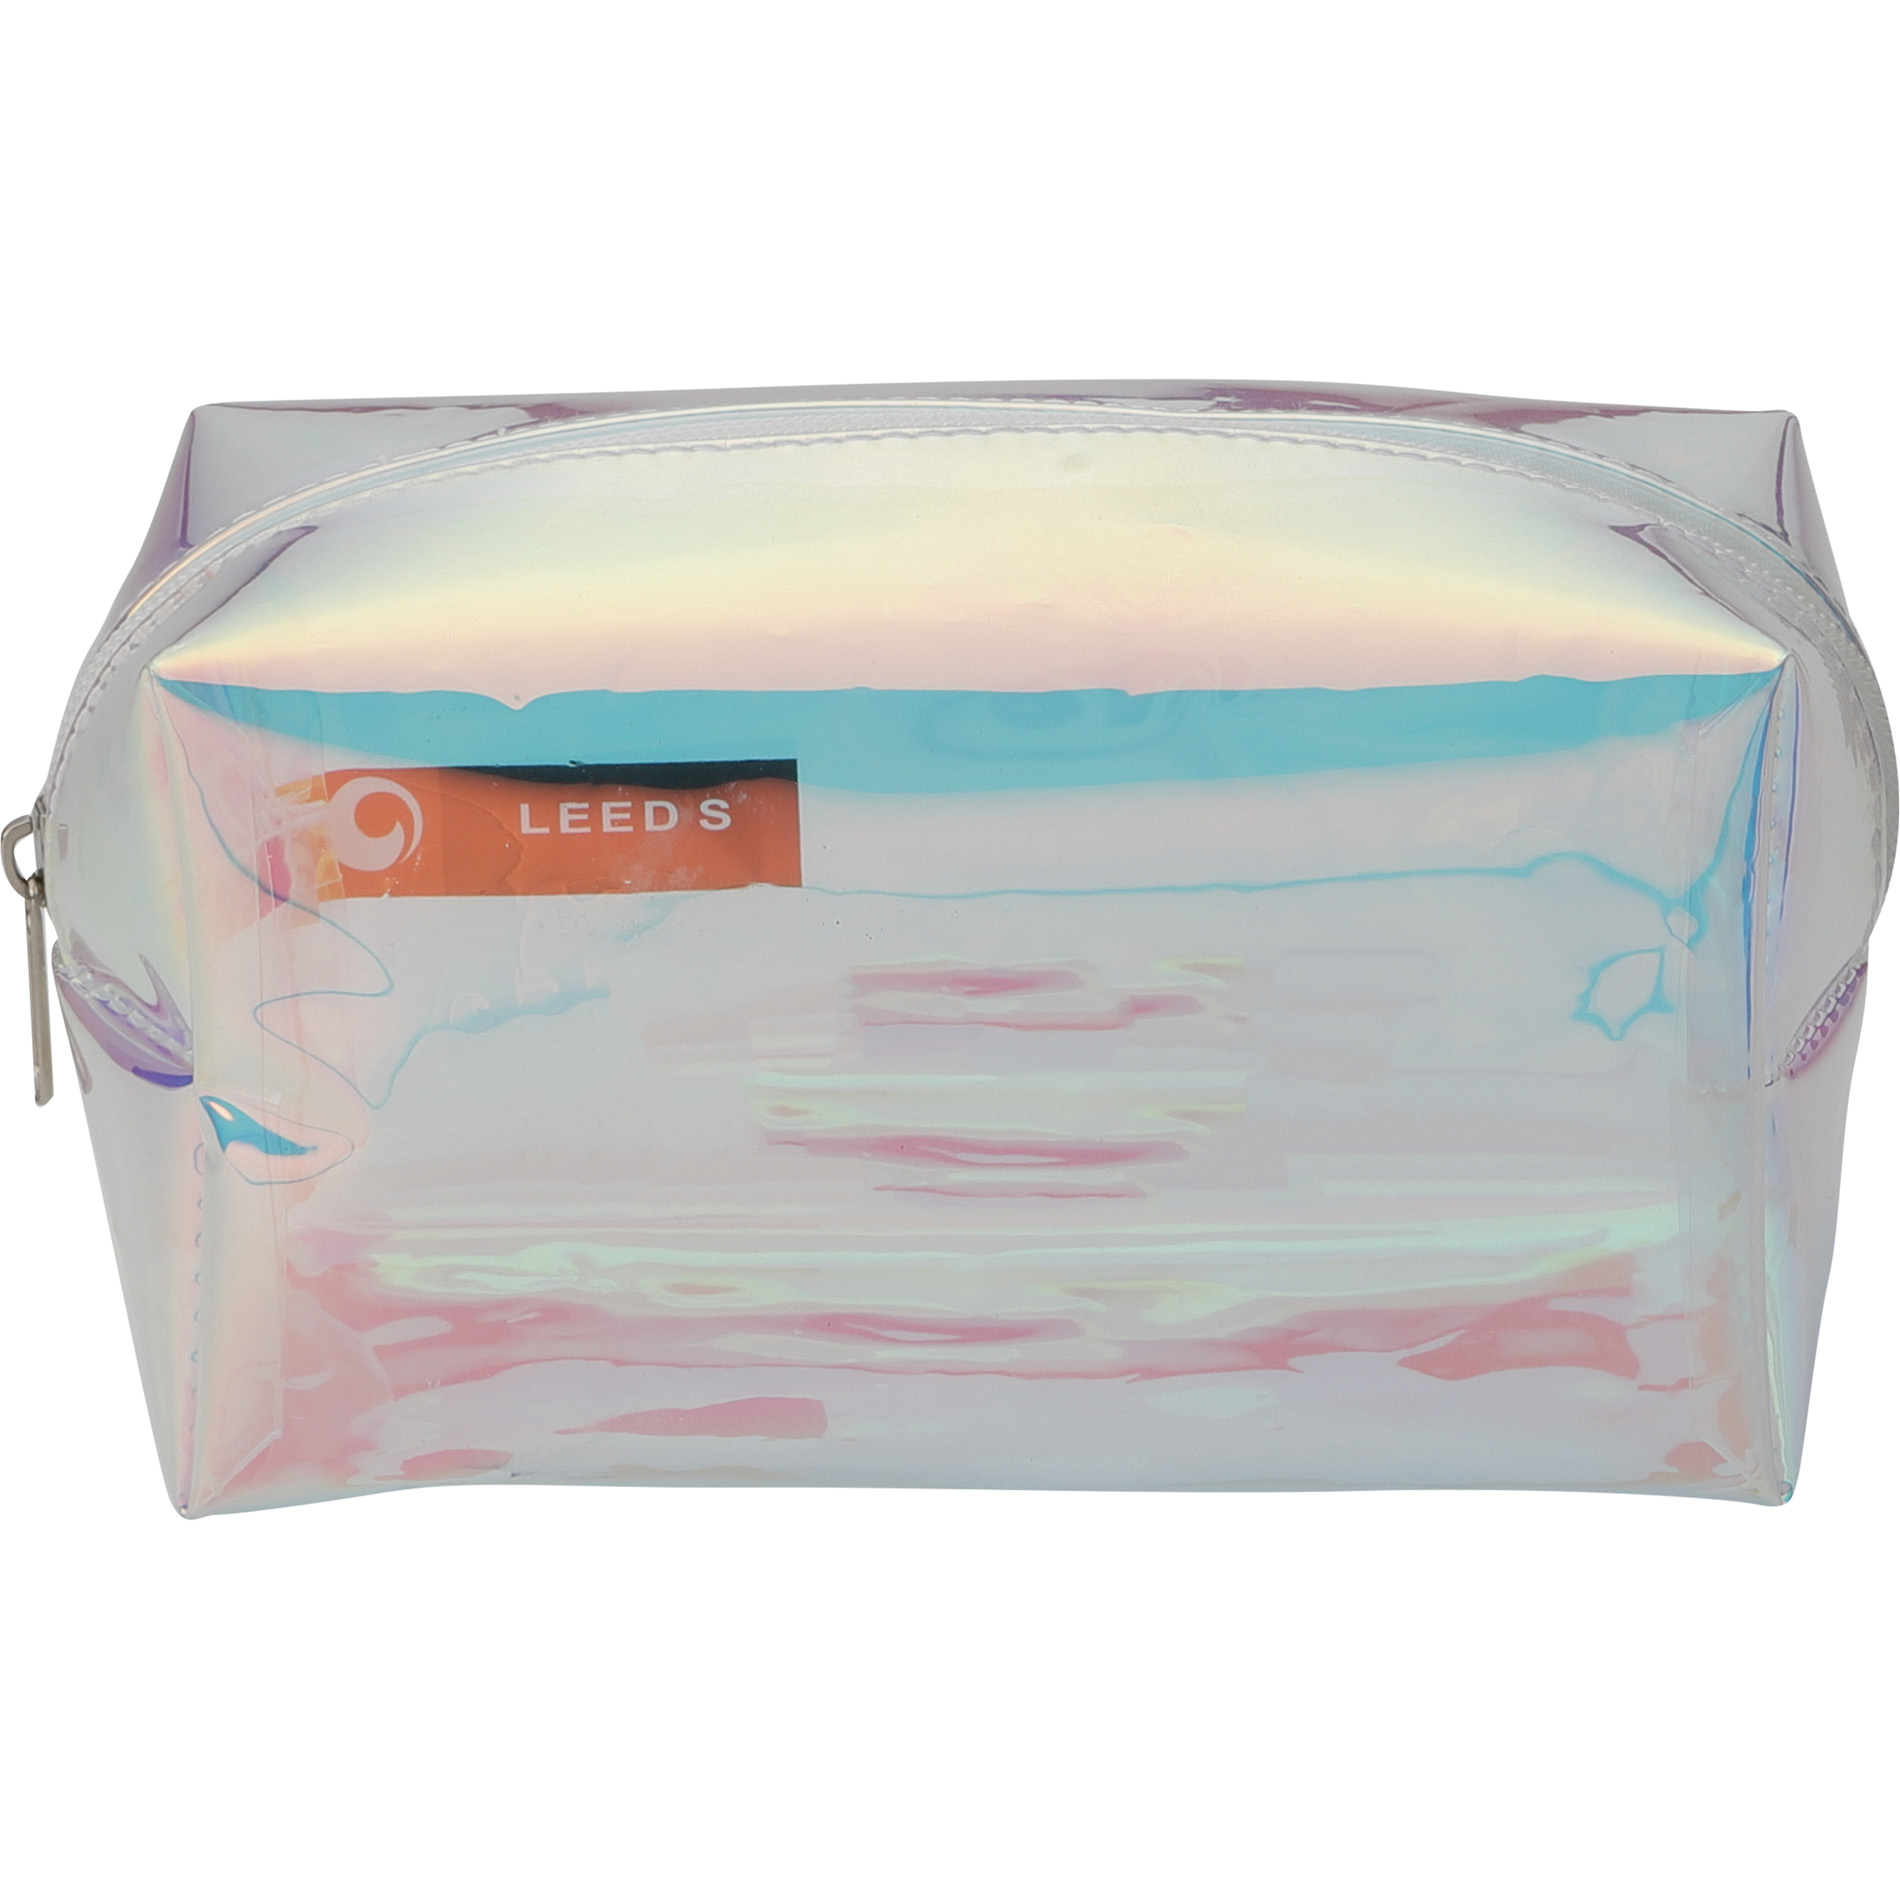 LEEDS 8700-05 - Iridescent Travel Pouch